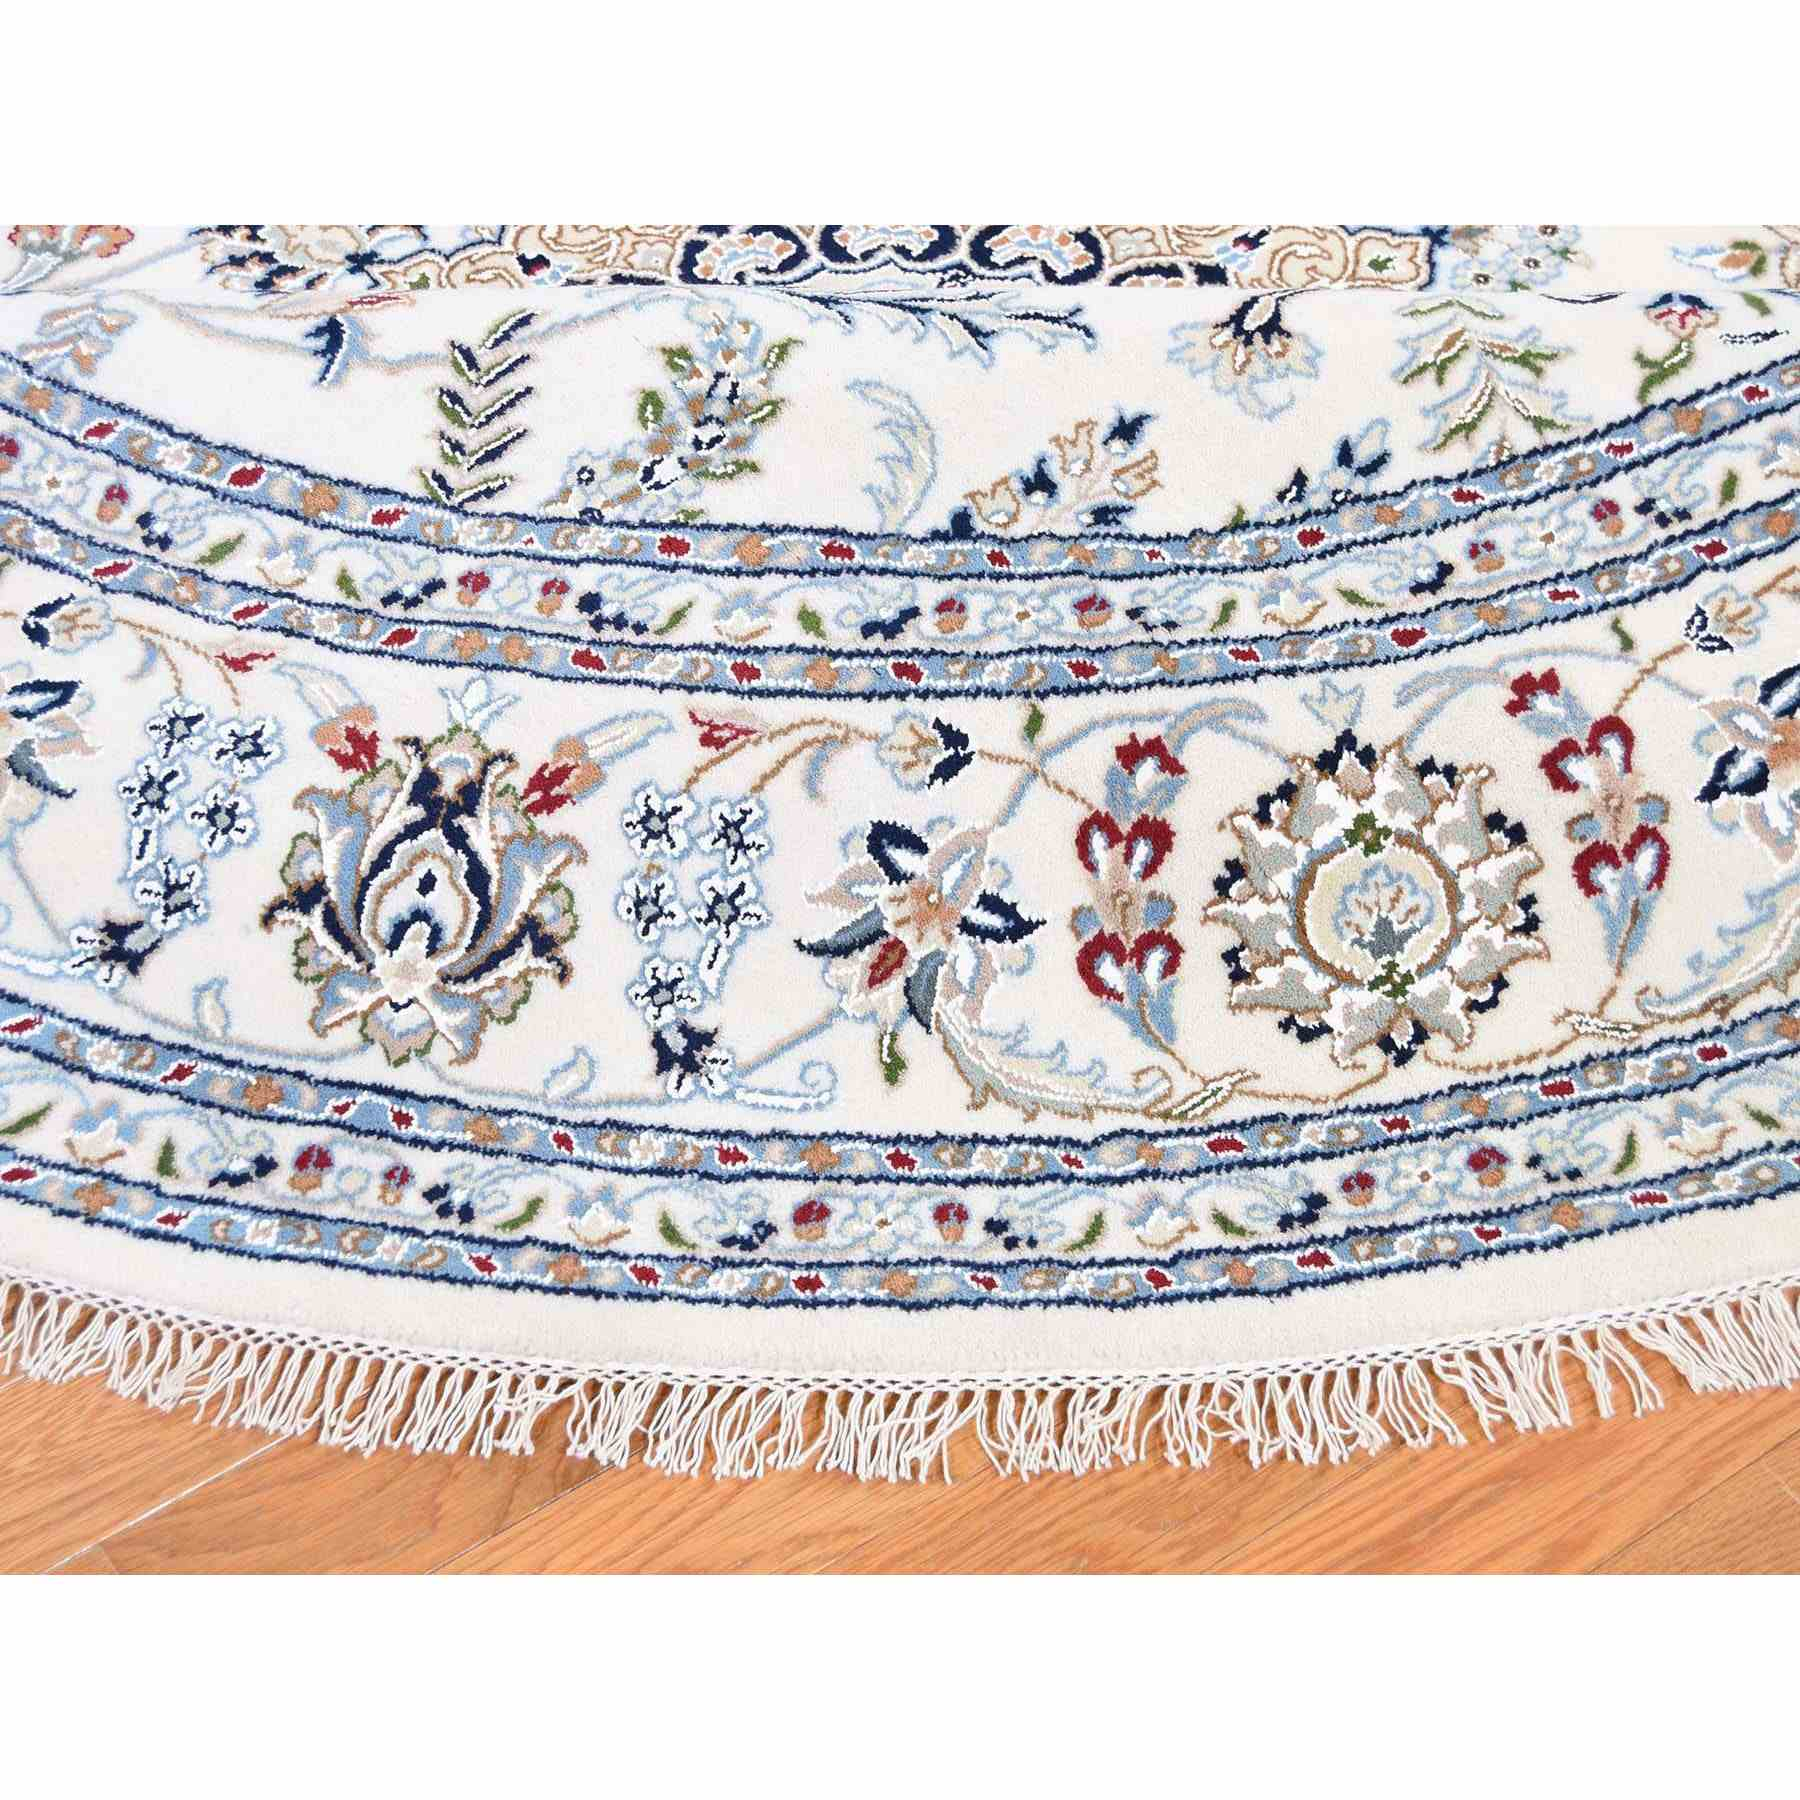 Fine-Oriental-Hand-Knotted-Rug-249920